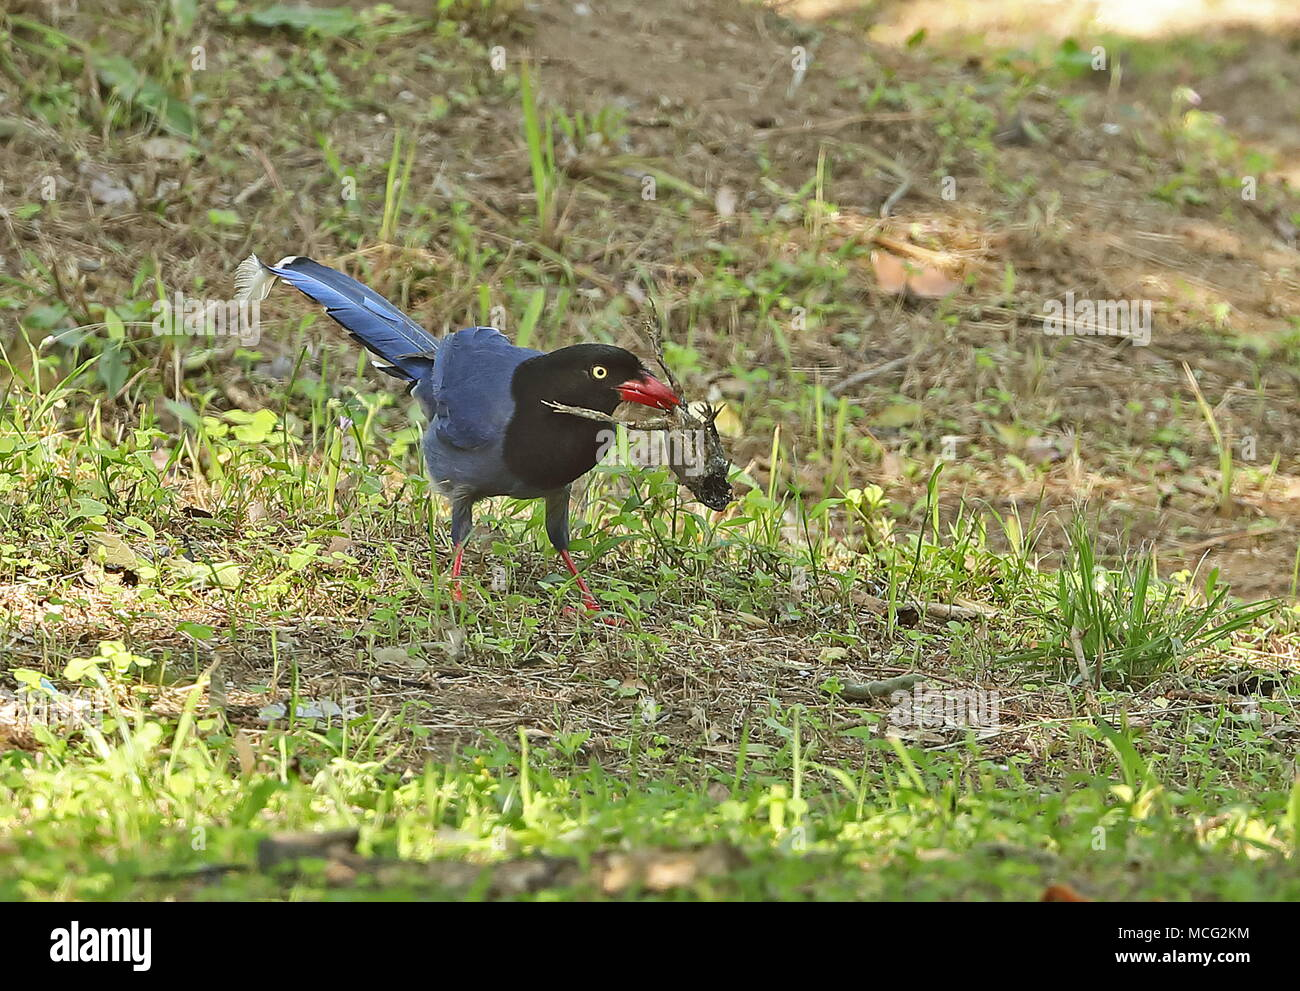 Taiwan Blue Magpie (Urocissa caerulea) adult on ground with body of a desicated frog or toad  Jinshan, Taiwan                April - Stock Image